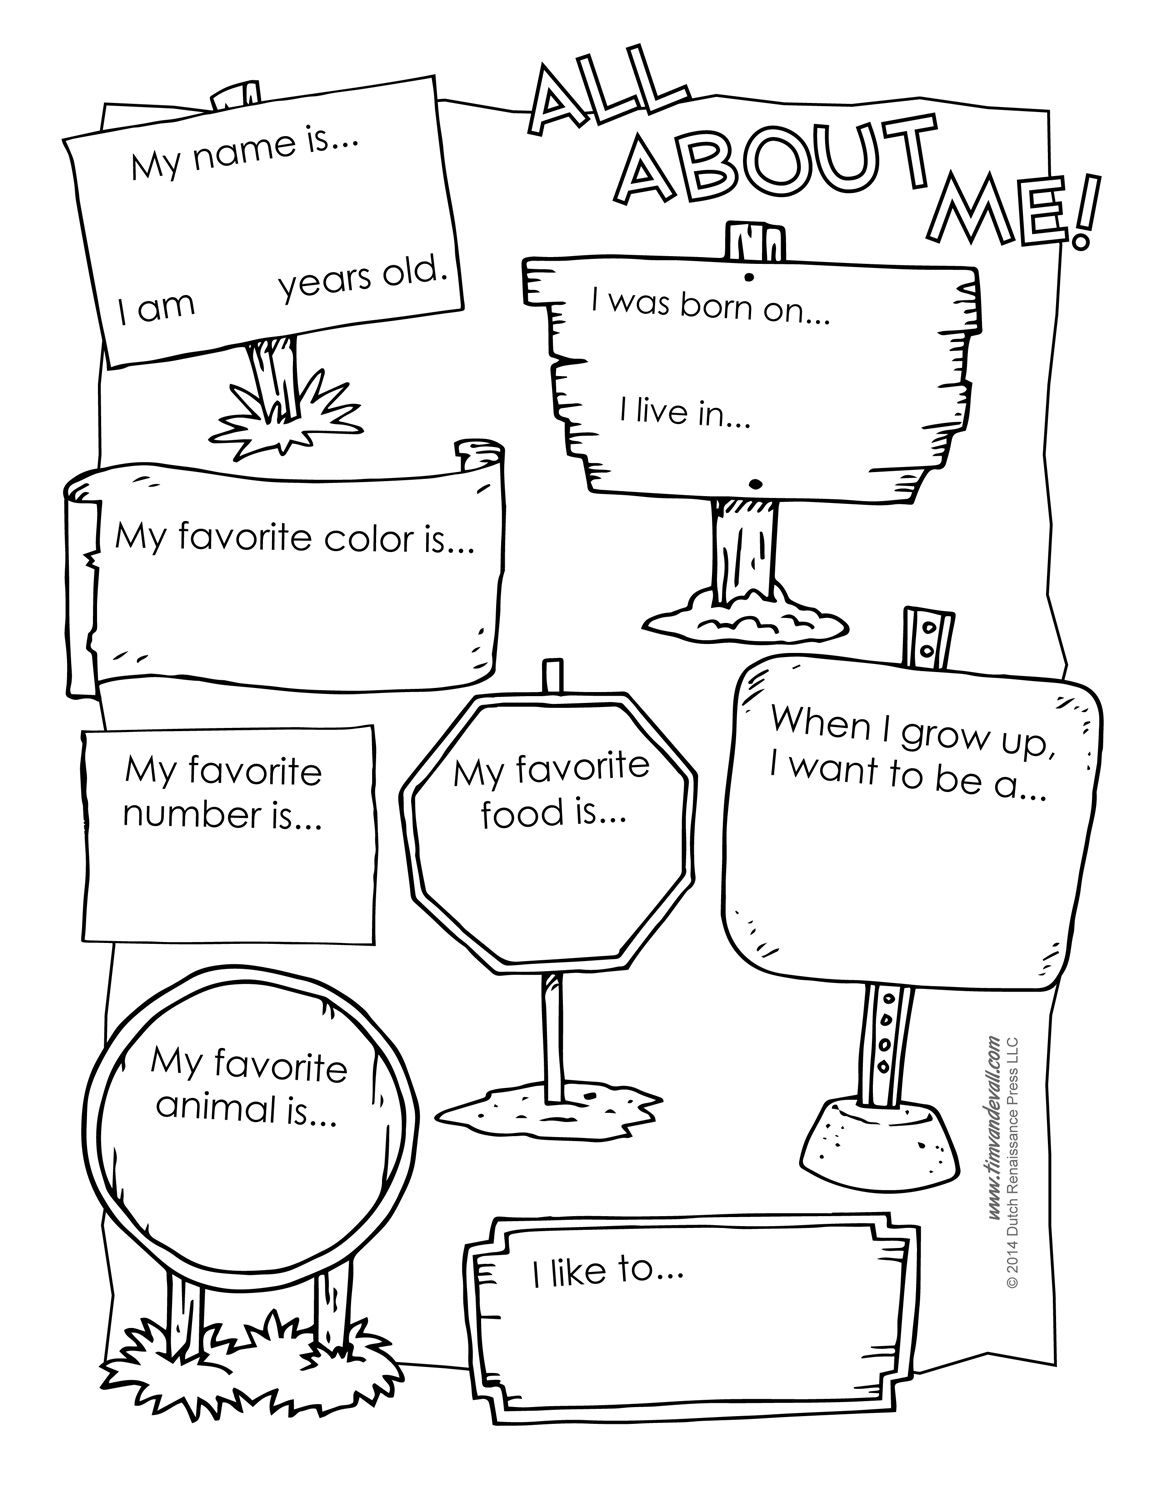 All About Me Preschool Template 6 Best Images Of All About Me Printable Template